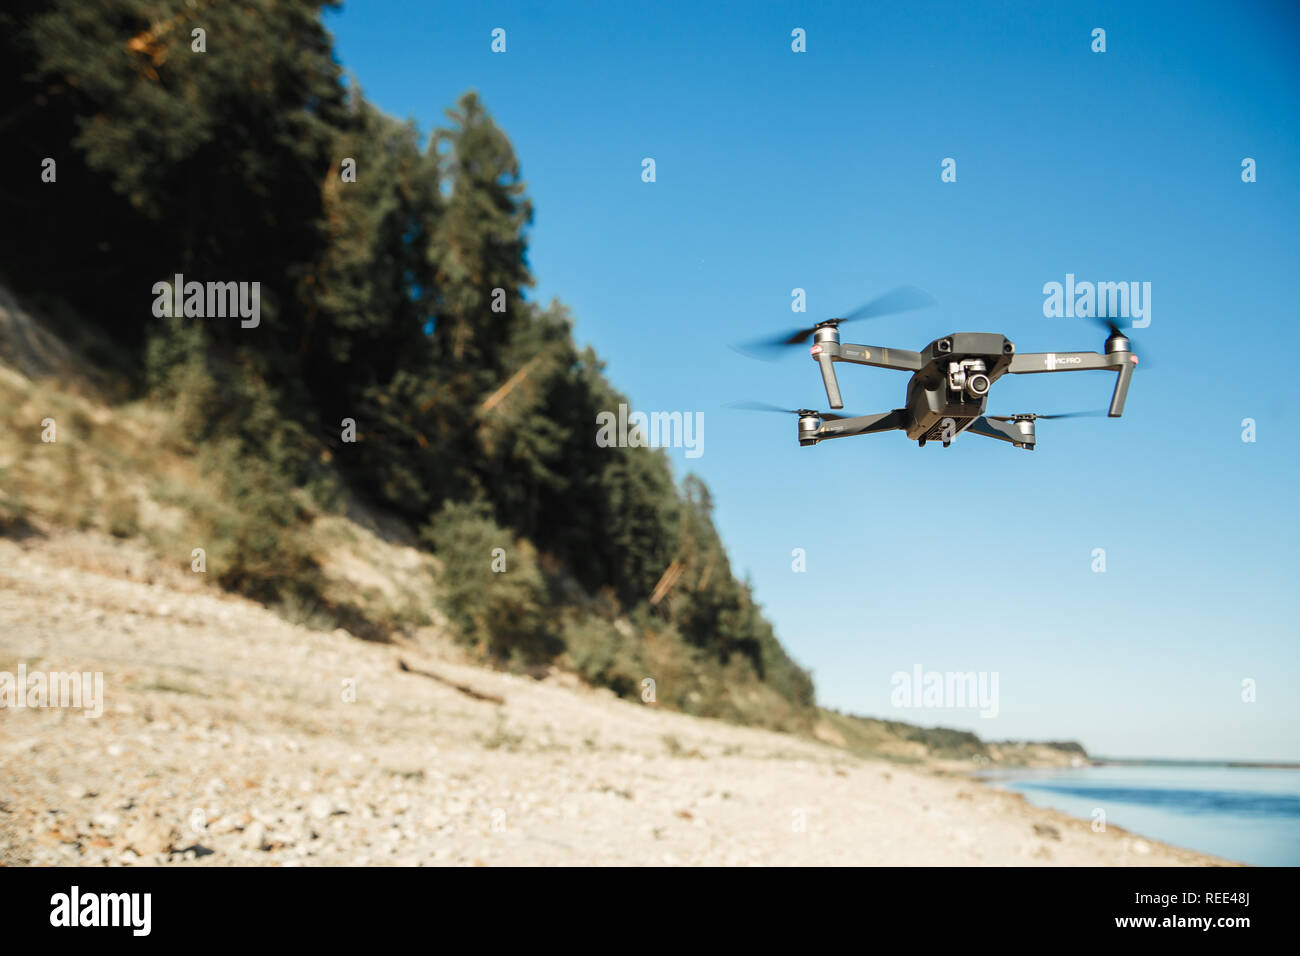 Compact Drone flying over the forest landscape. Flying remote camera. - Stock Image